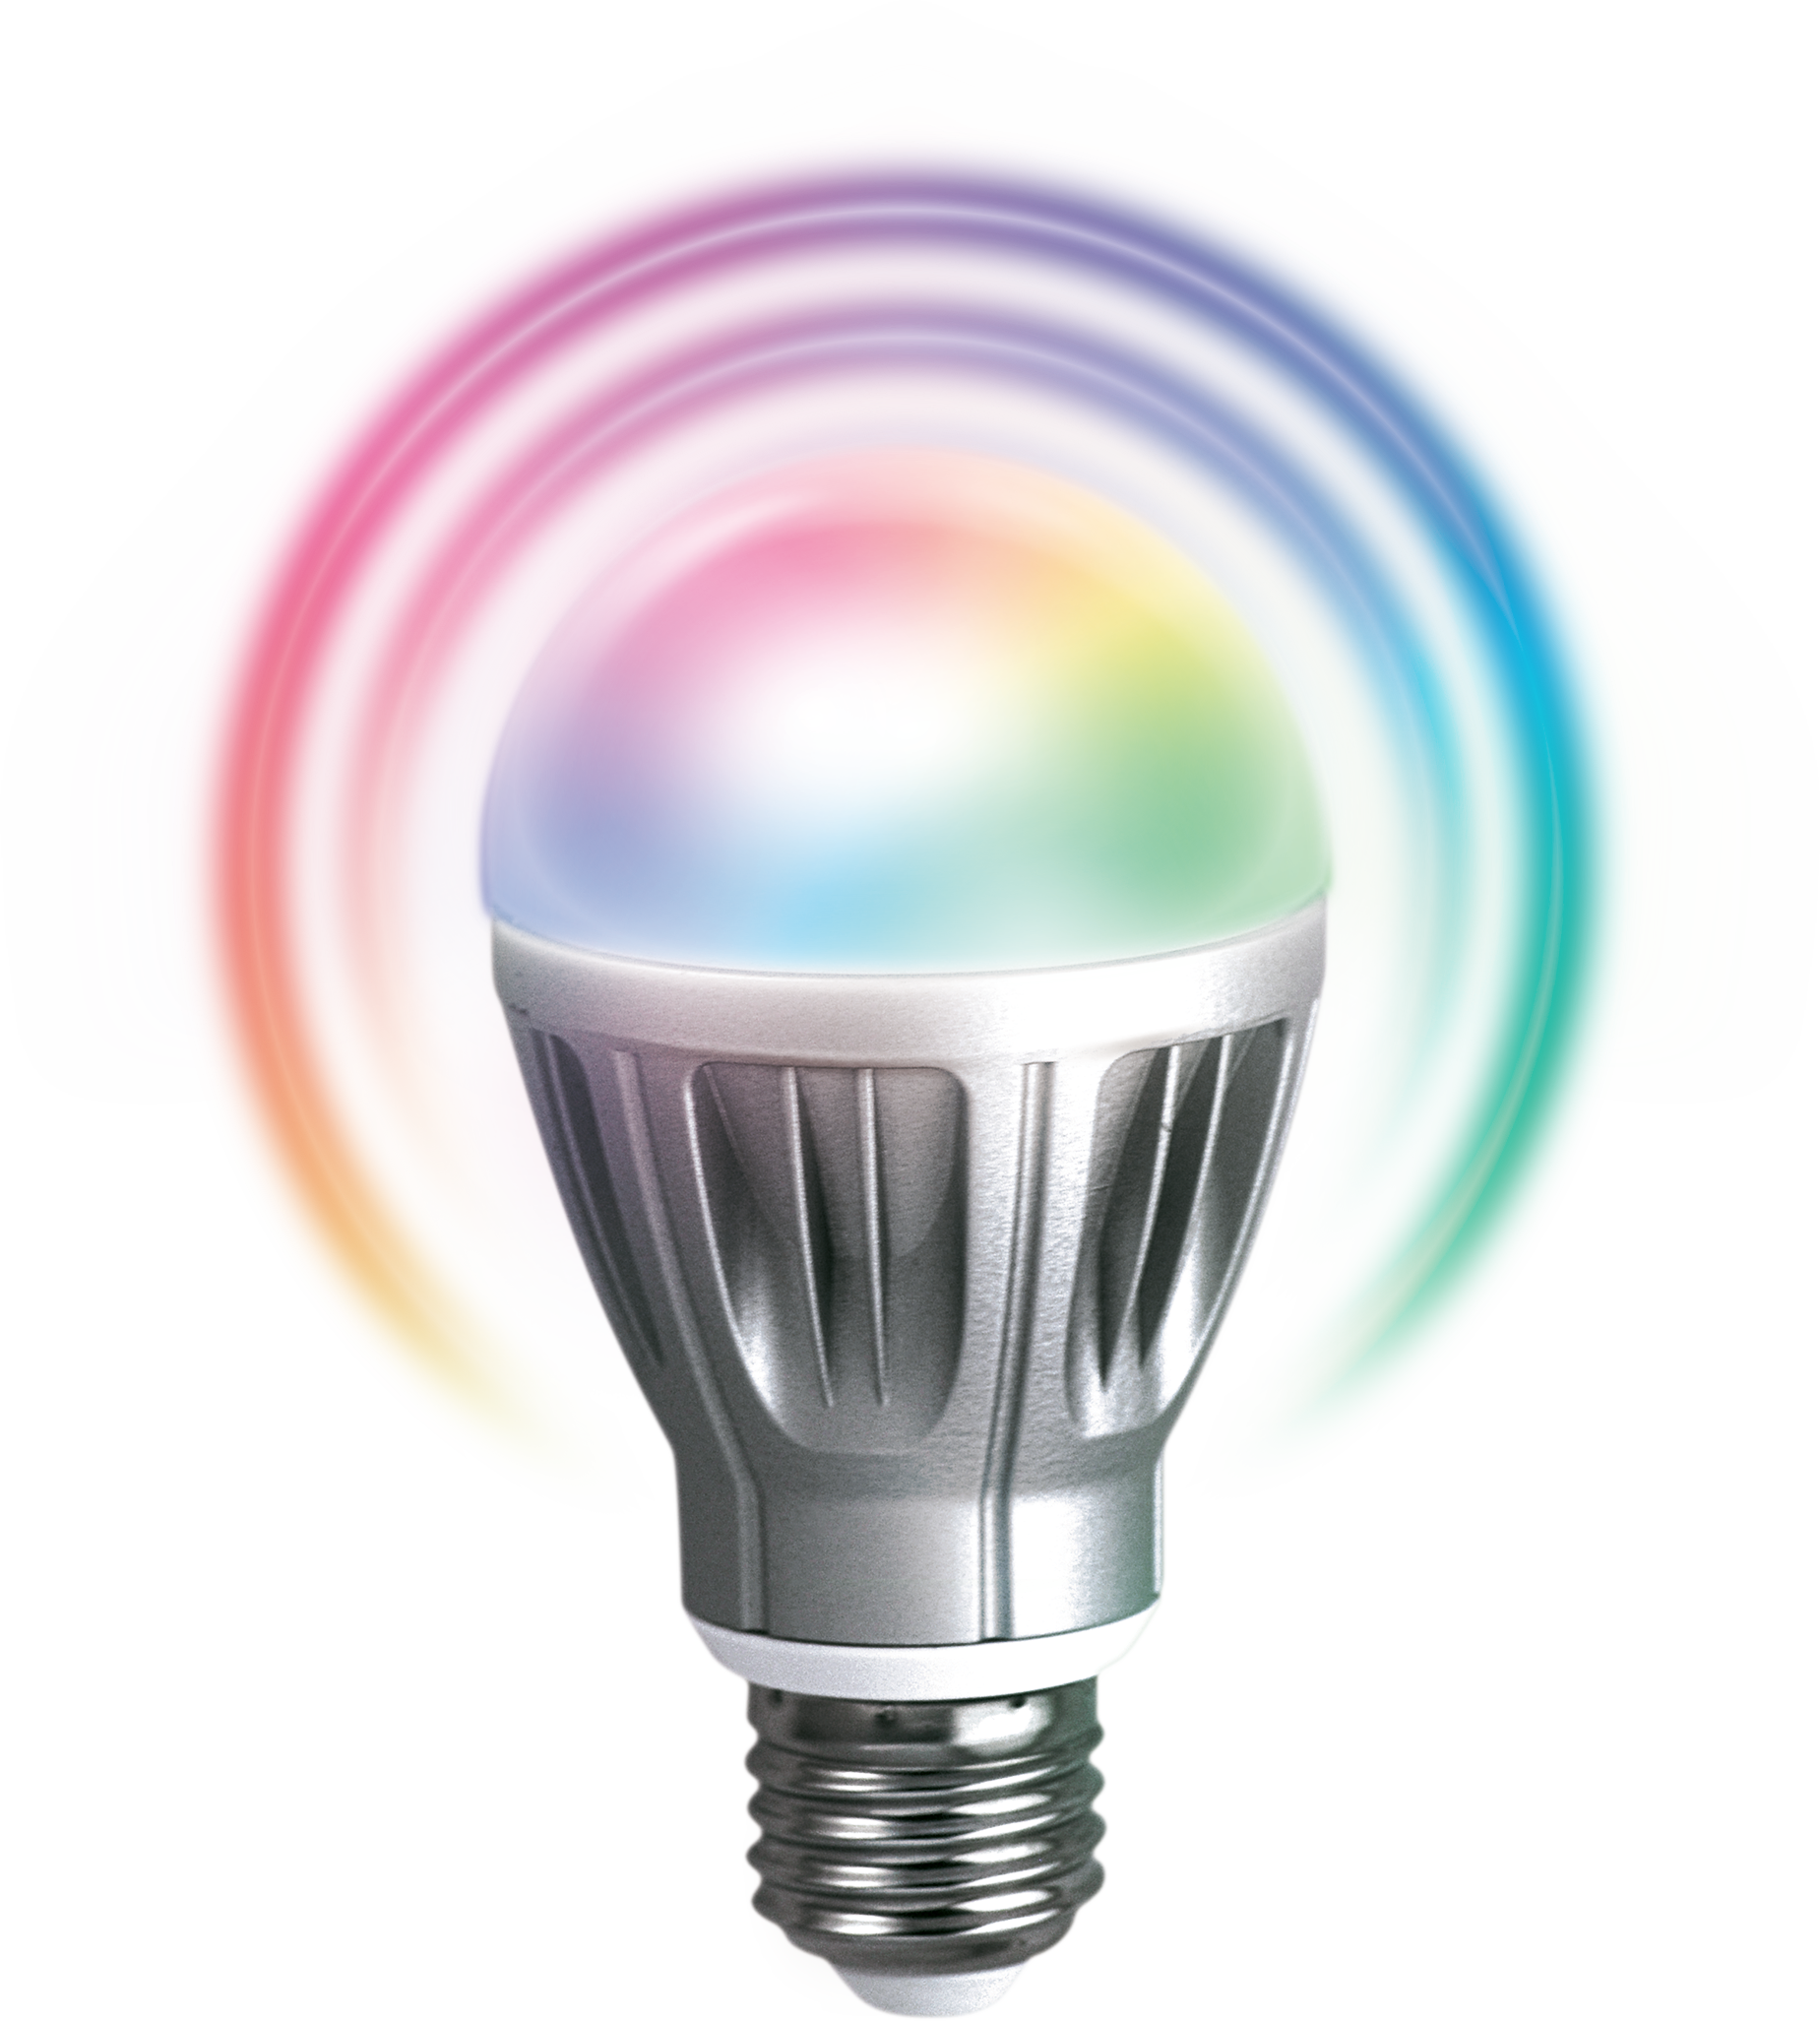 Zipato Rgbw Led Z Wave 6 7 Watt Bulb With 5 Color Channels Compatible With Most Z Wave Home